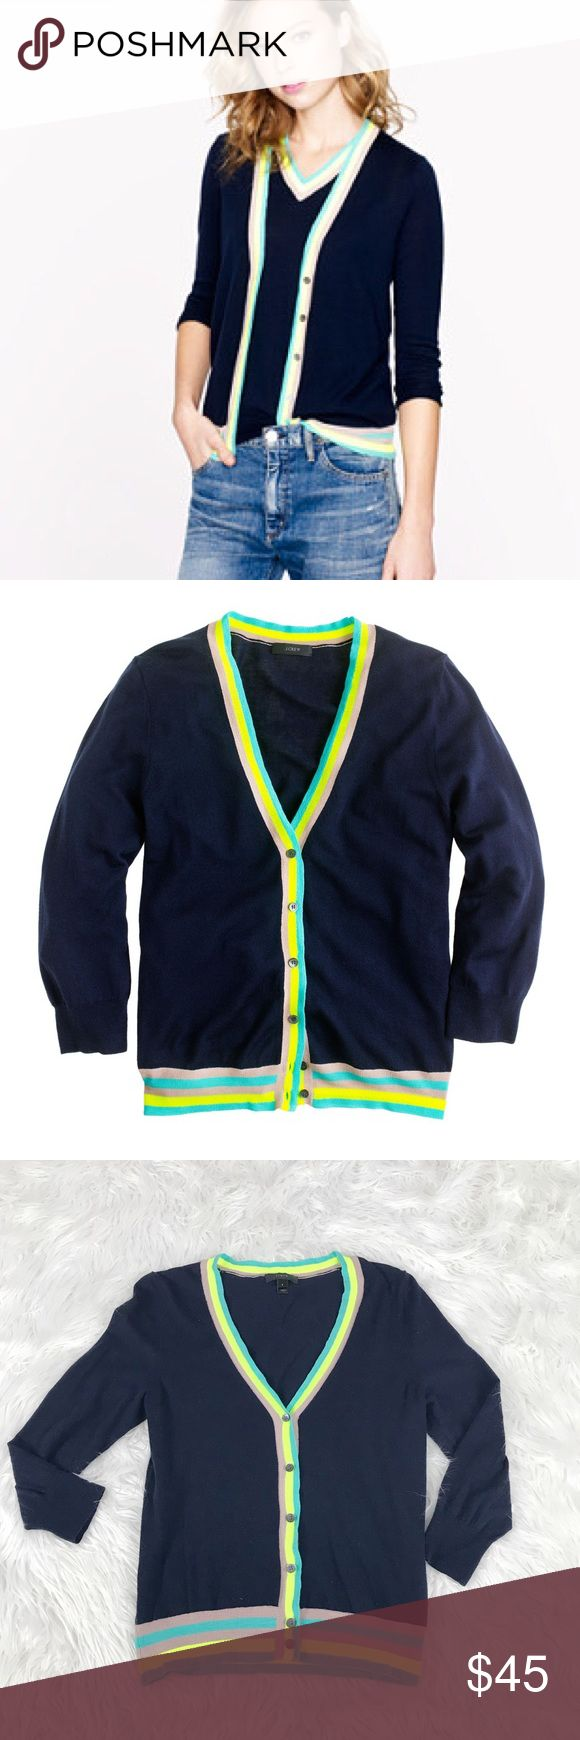 """J. Crew Merino Wool Neon Trim Cardigan Sweater 22"""" length 17.5"""" armpit to armpit. Lightweight. Merino wool style. Stripe pattern in neon colors. Cardigan sweater. Excellent condition. Bundle 2+ items for a discount. J. Crew Sweaters Cardigans"""